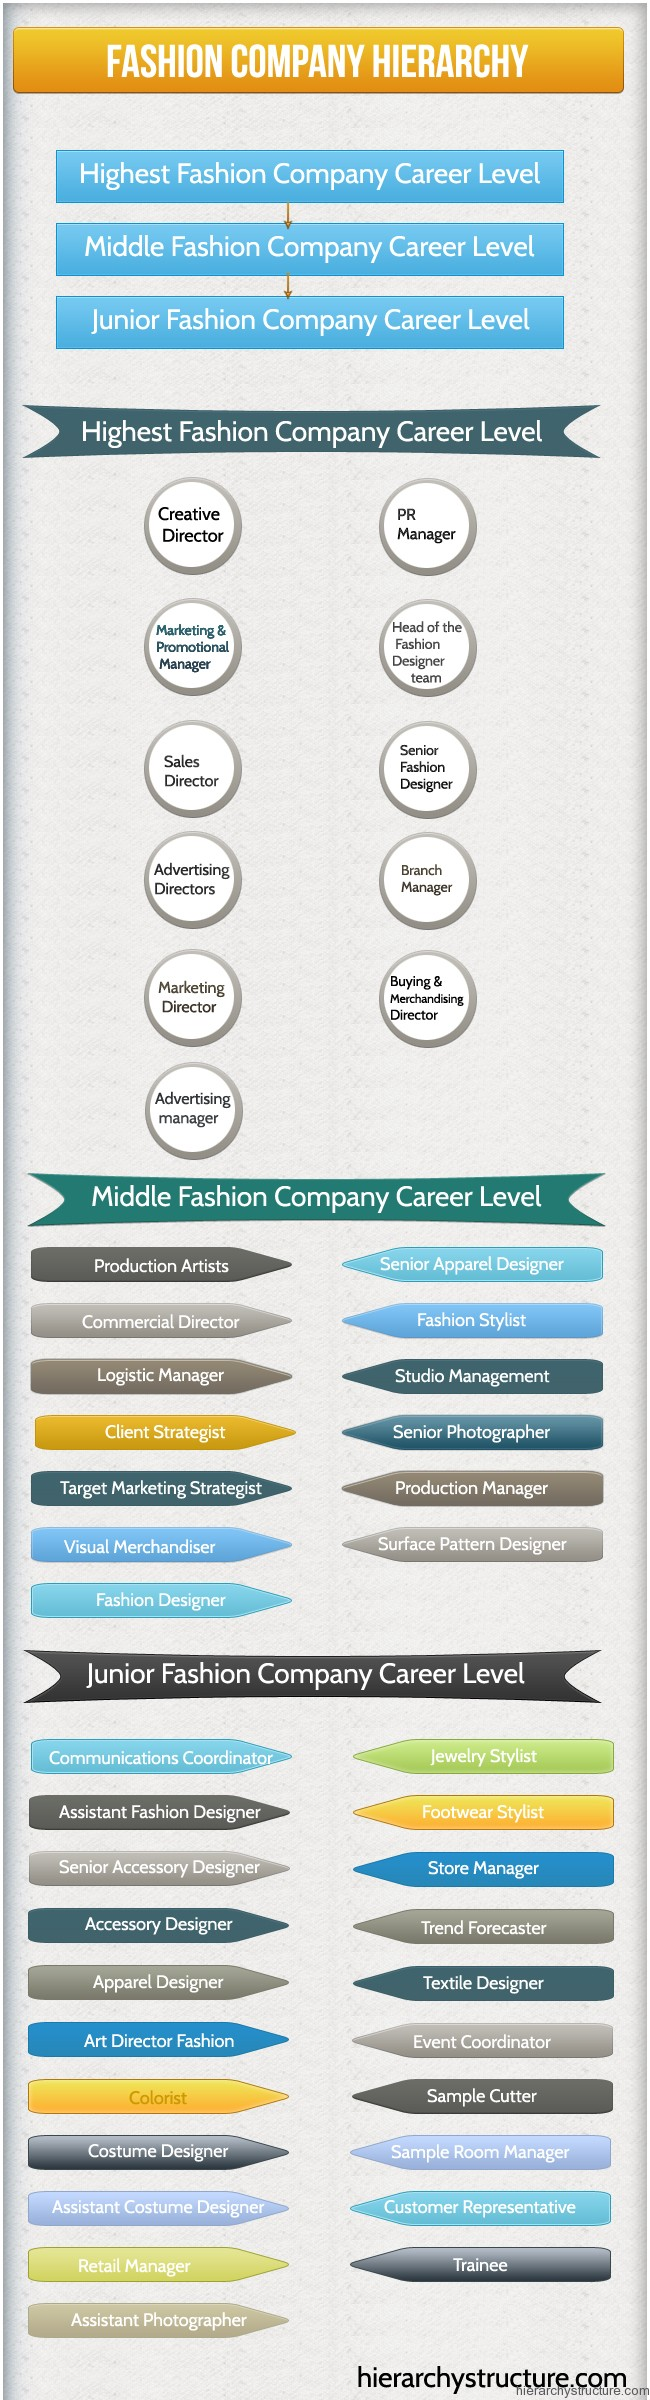 Fashion Company Hierarchy